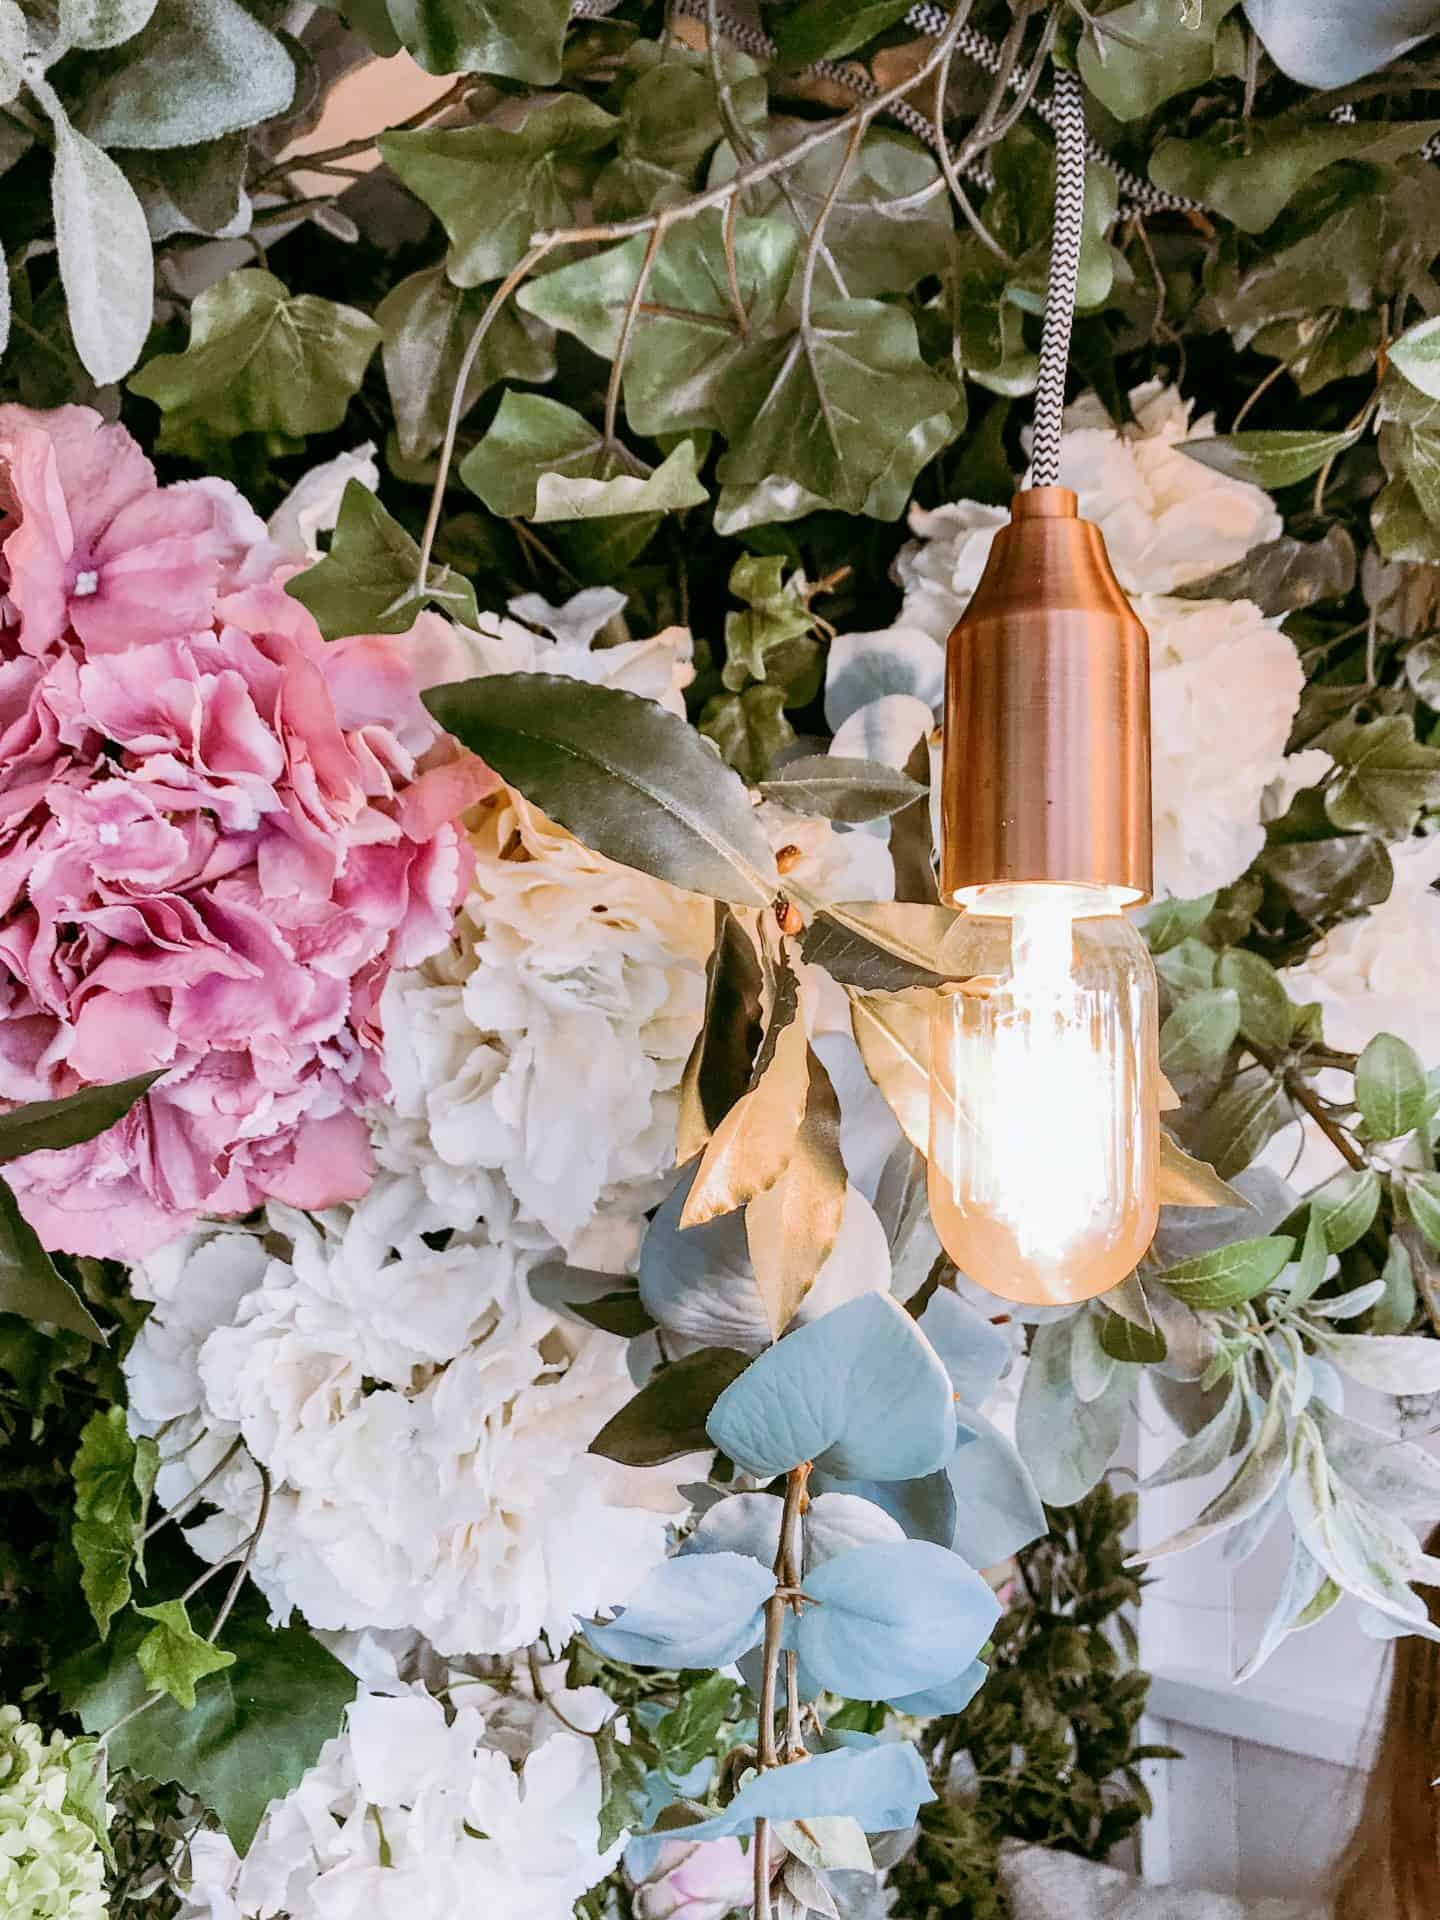 Copper lamp and flowers in the Garden Den